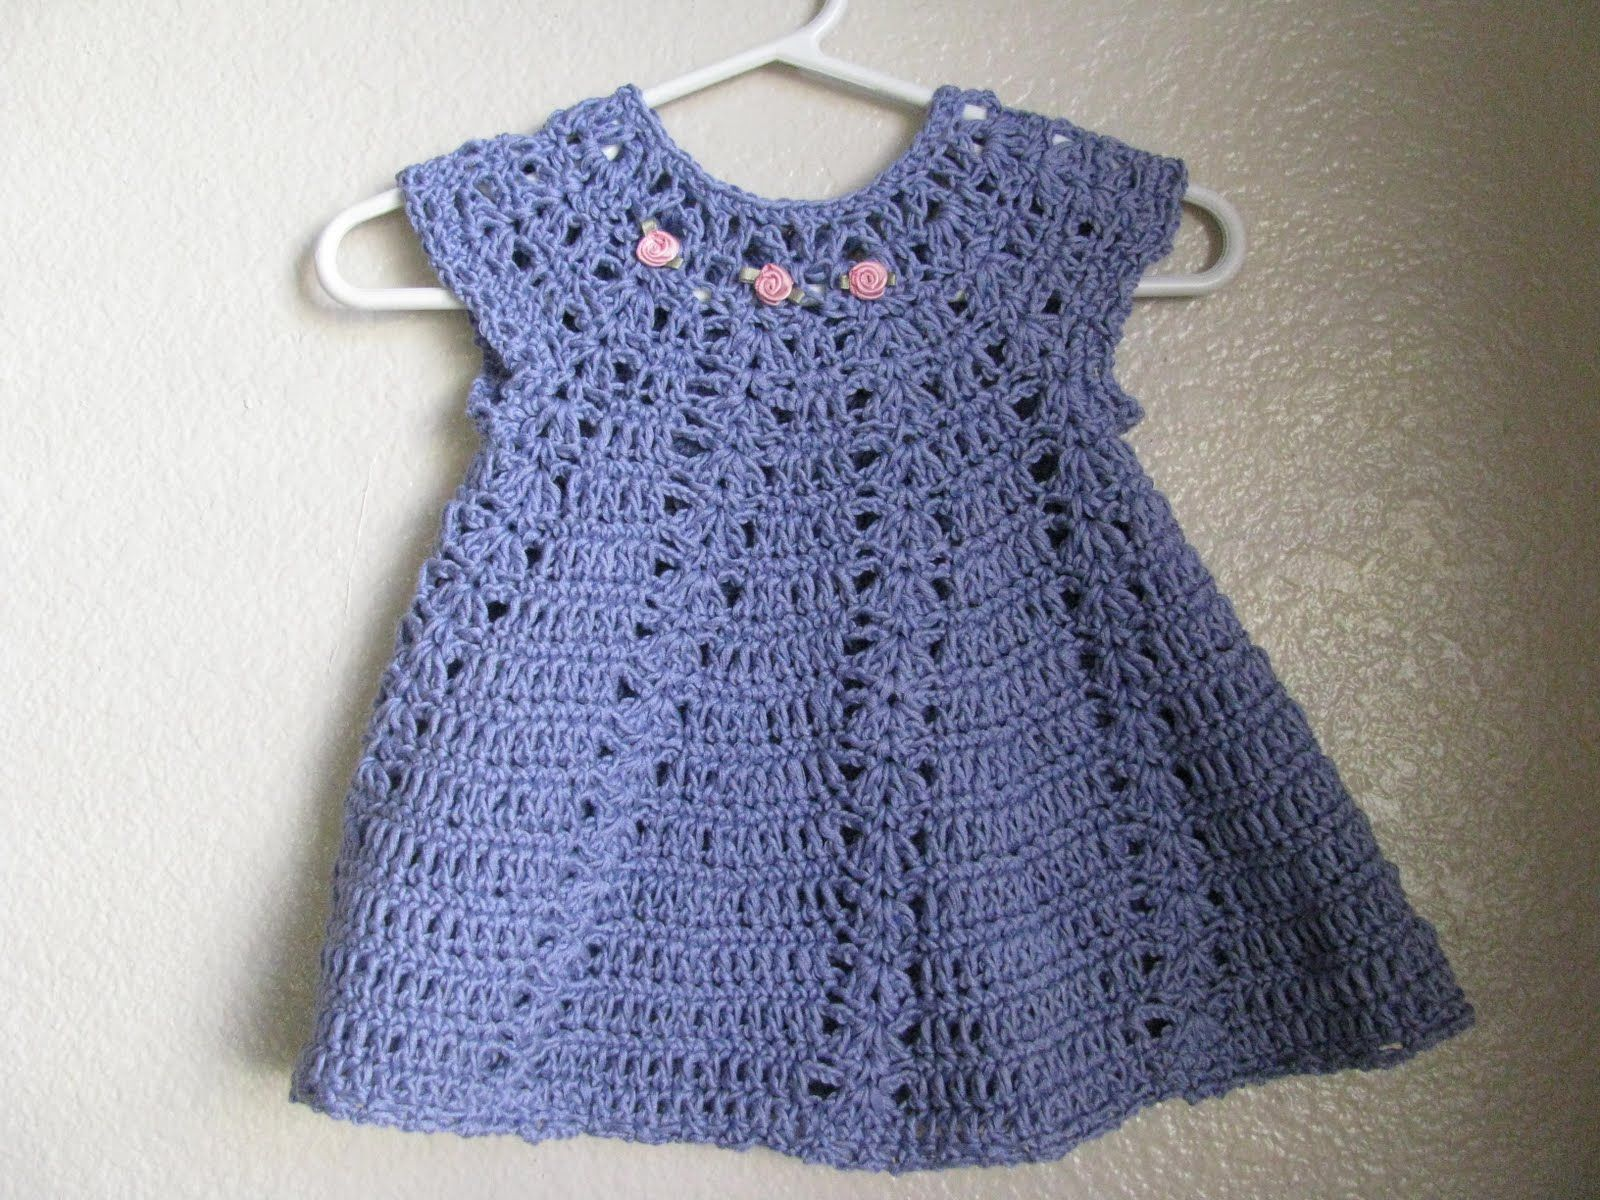 My First Crocheted Baby Dress Finished